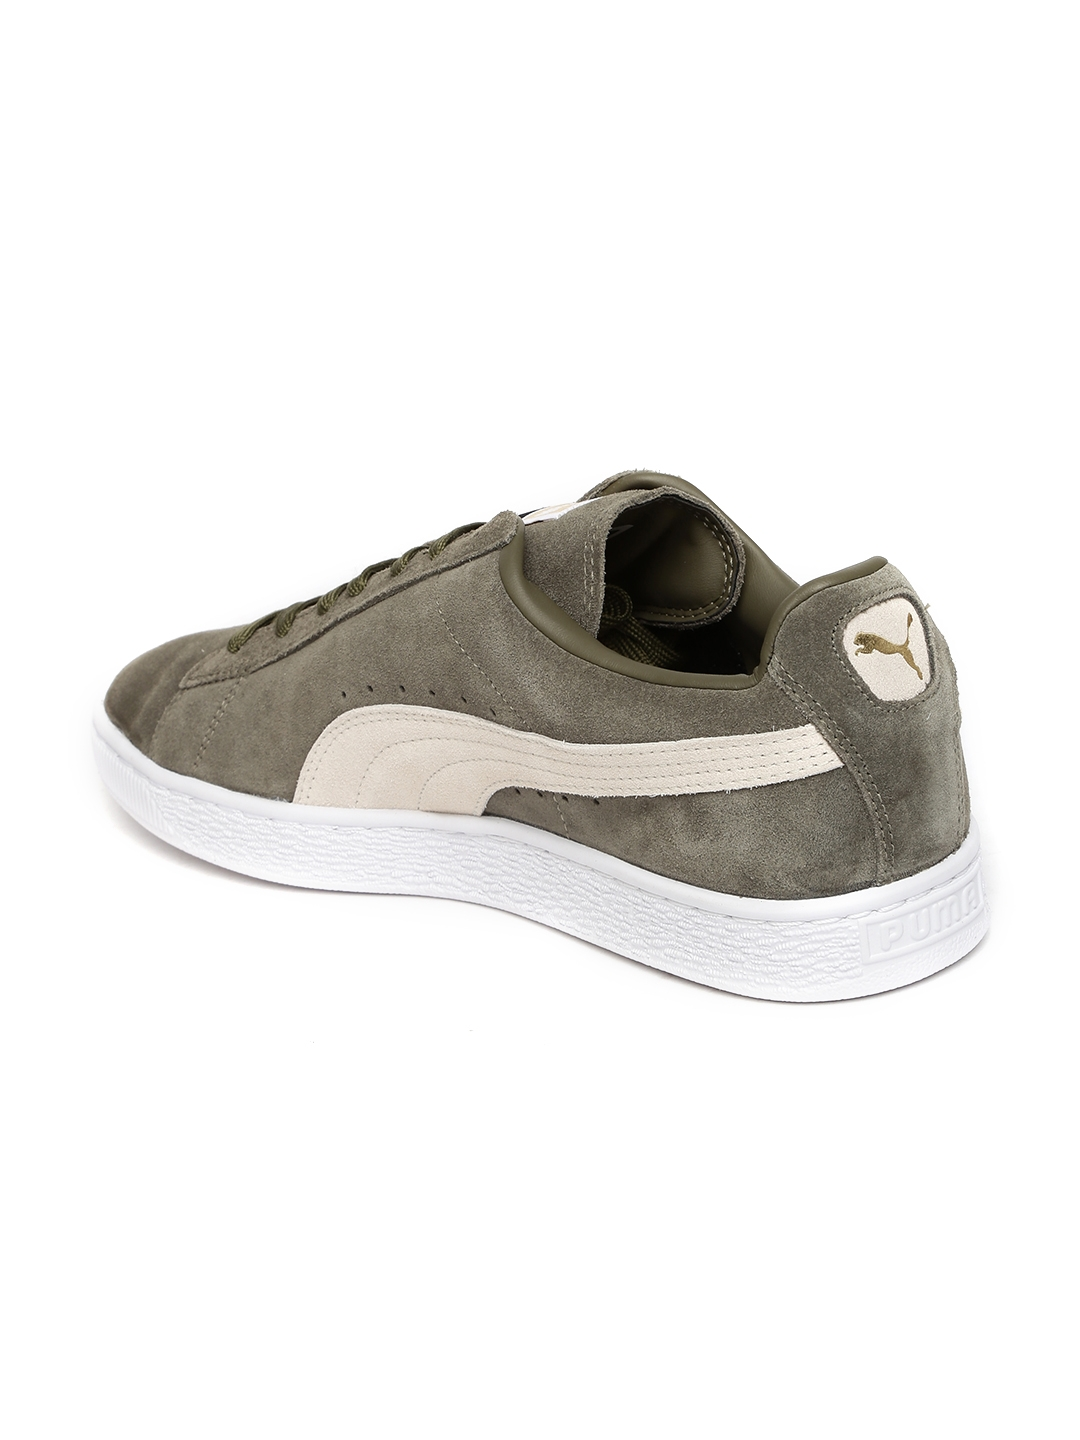 Buy Puma Men Olive Green Suede Classic + Sneakers - Casual Shoes for ... 4aef9f720